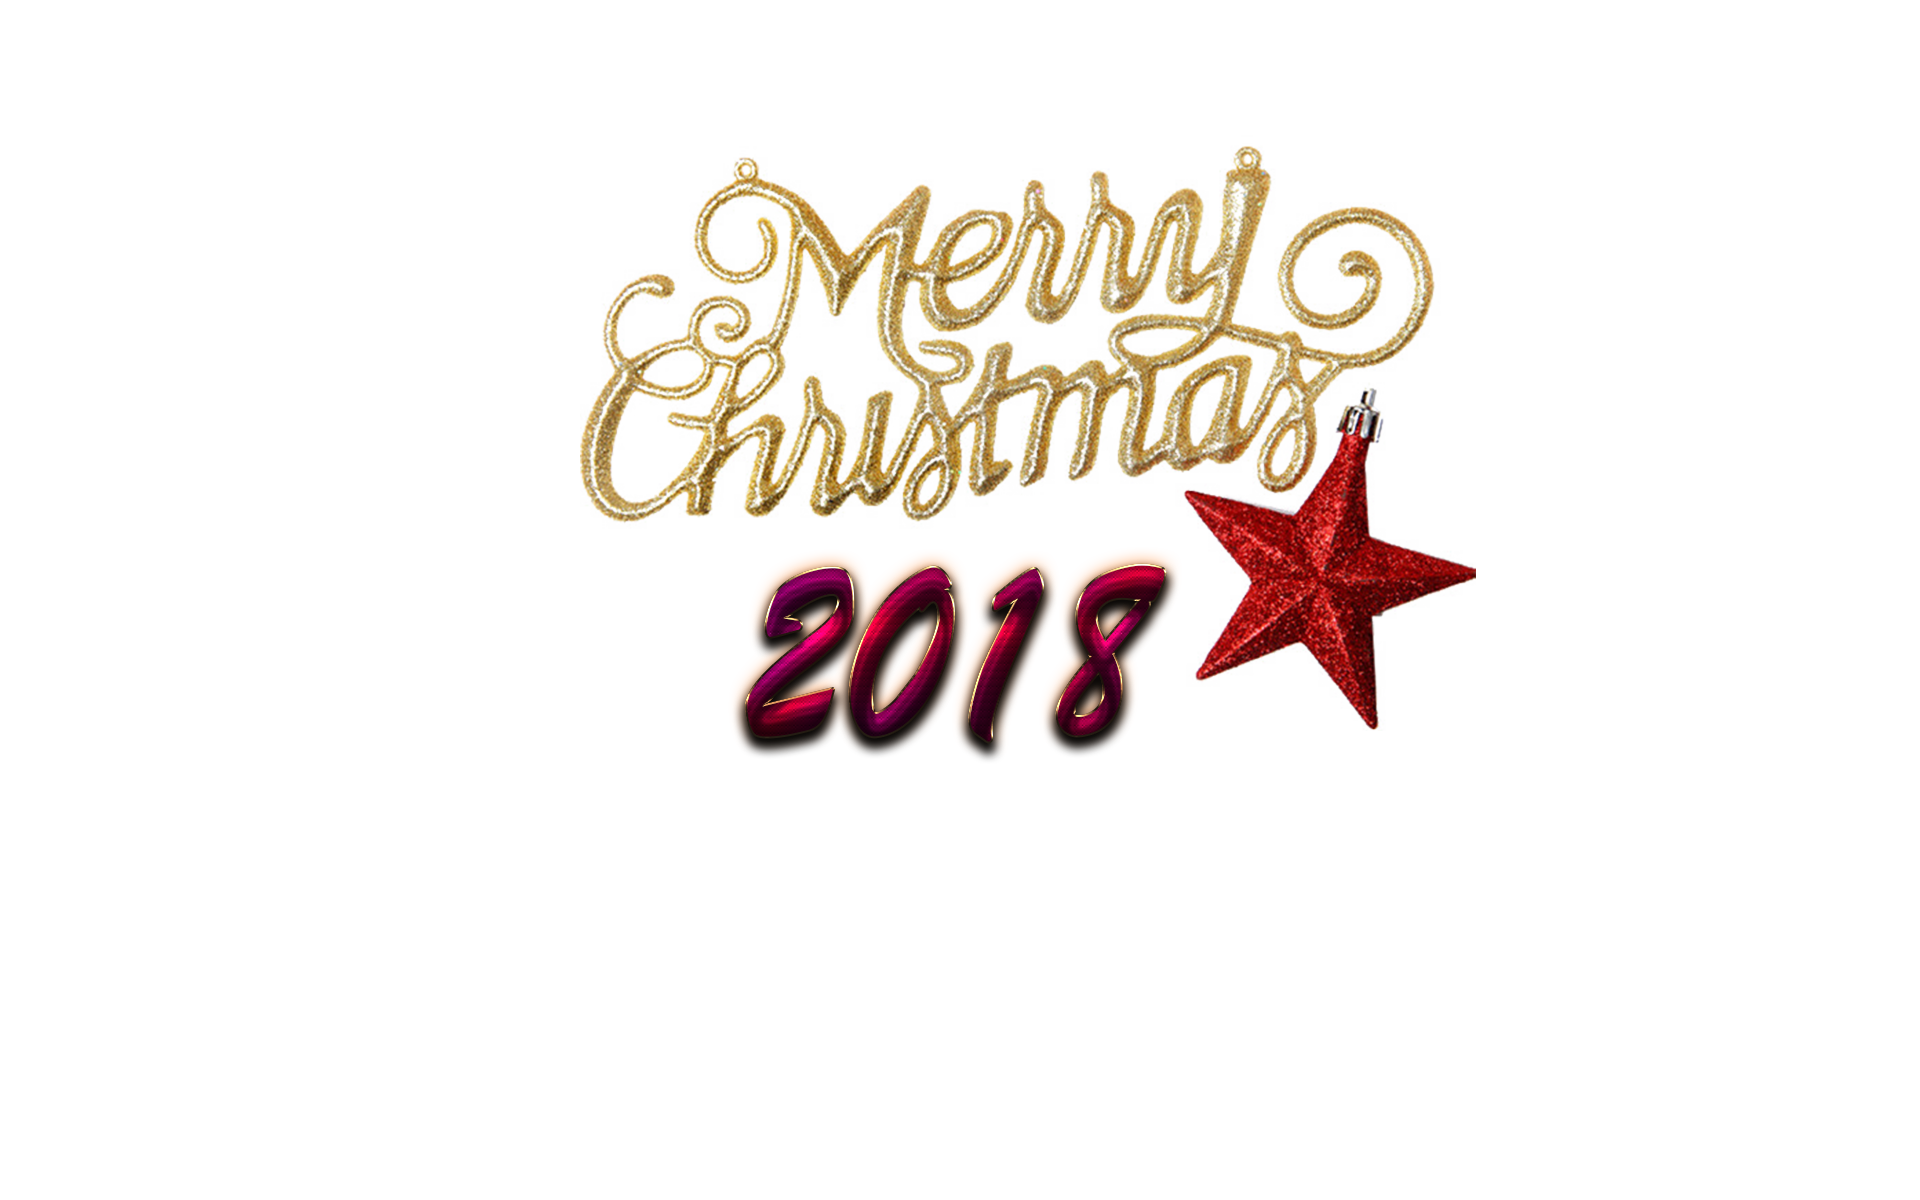 Merry Christmas 2018 PNG Photo.